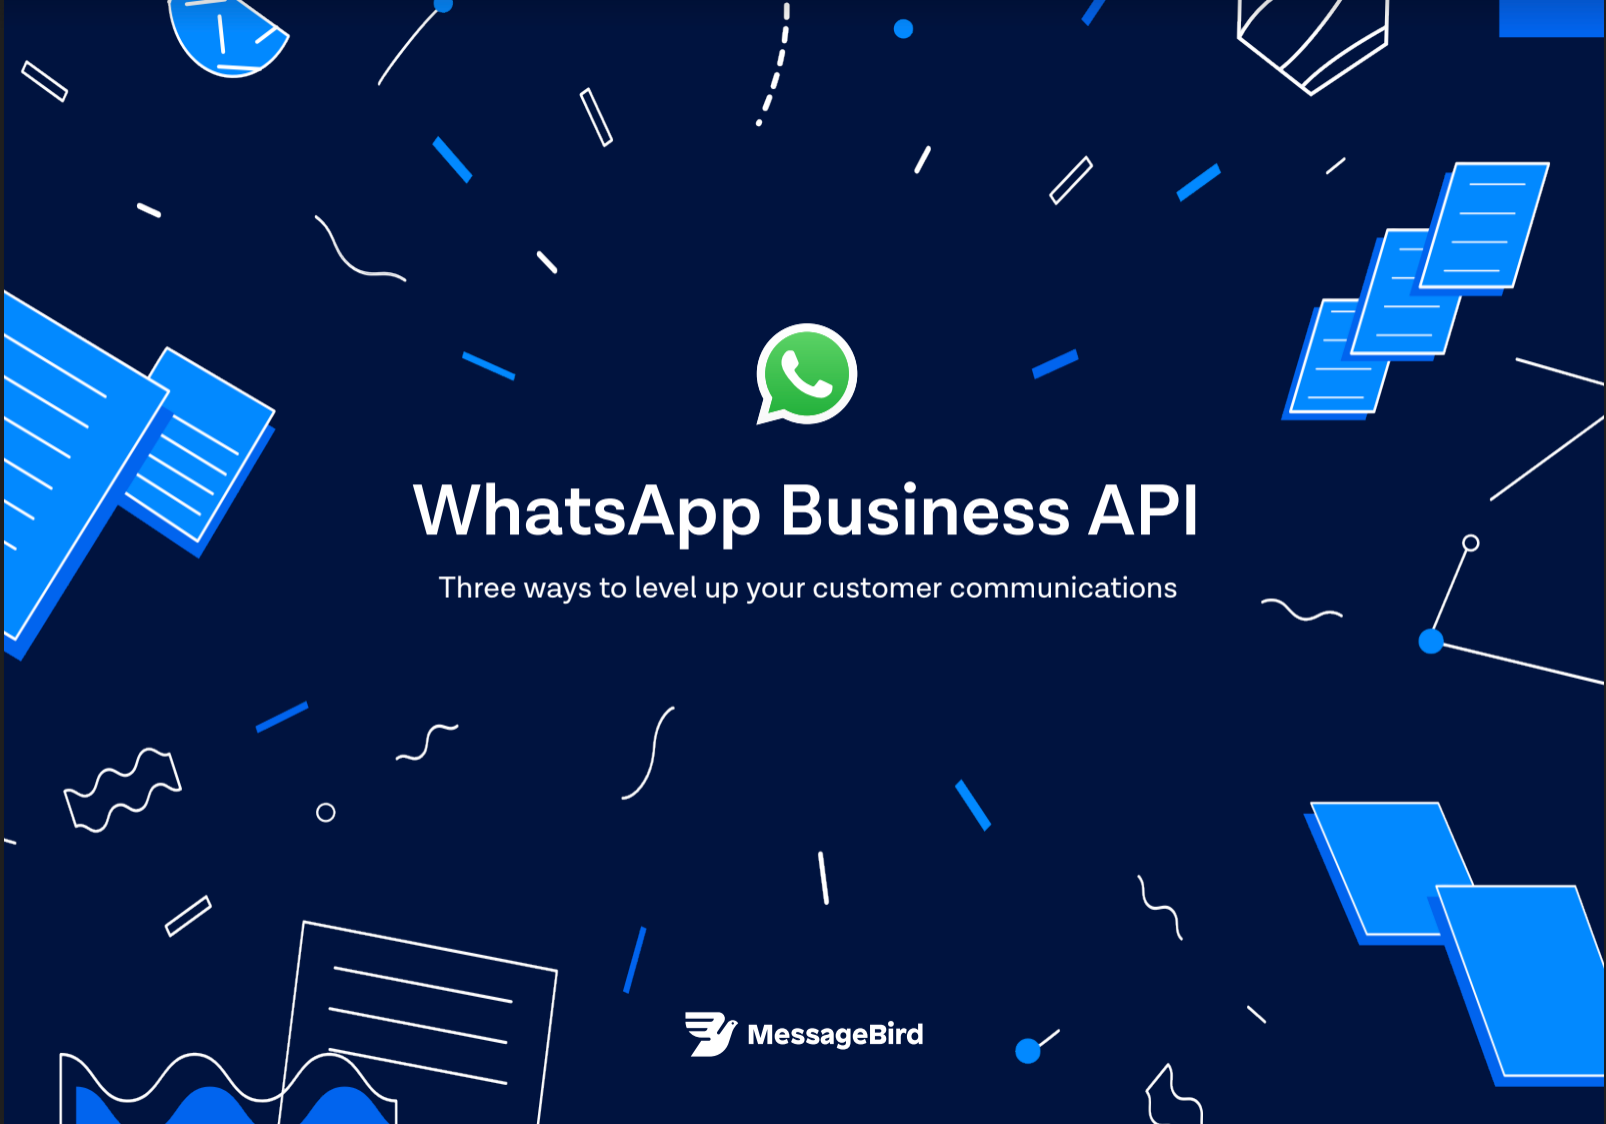 whatsapp api guide